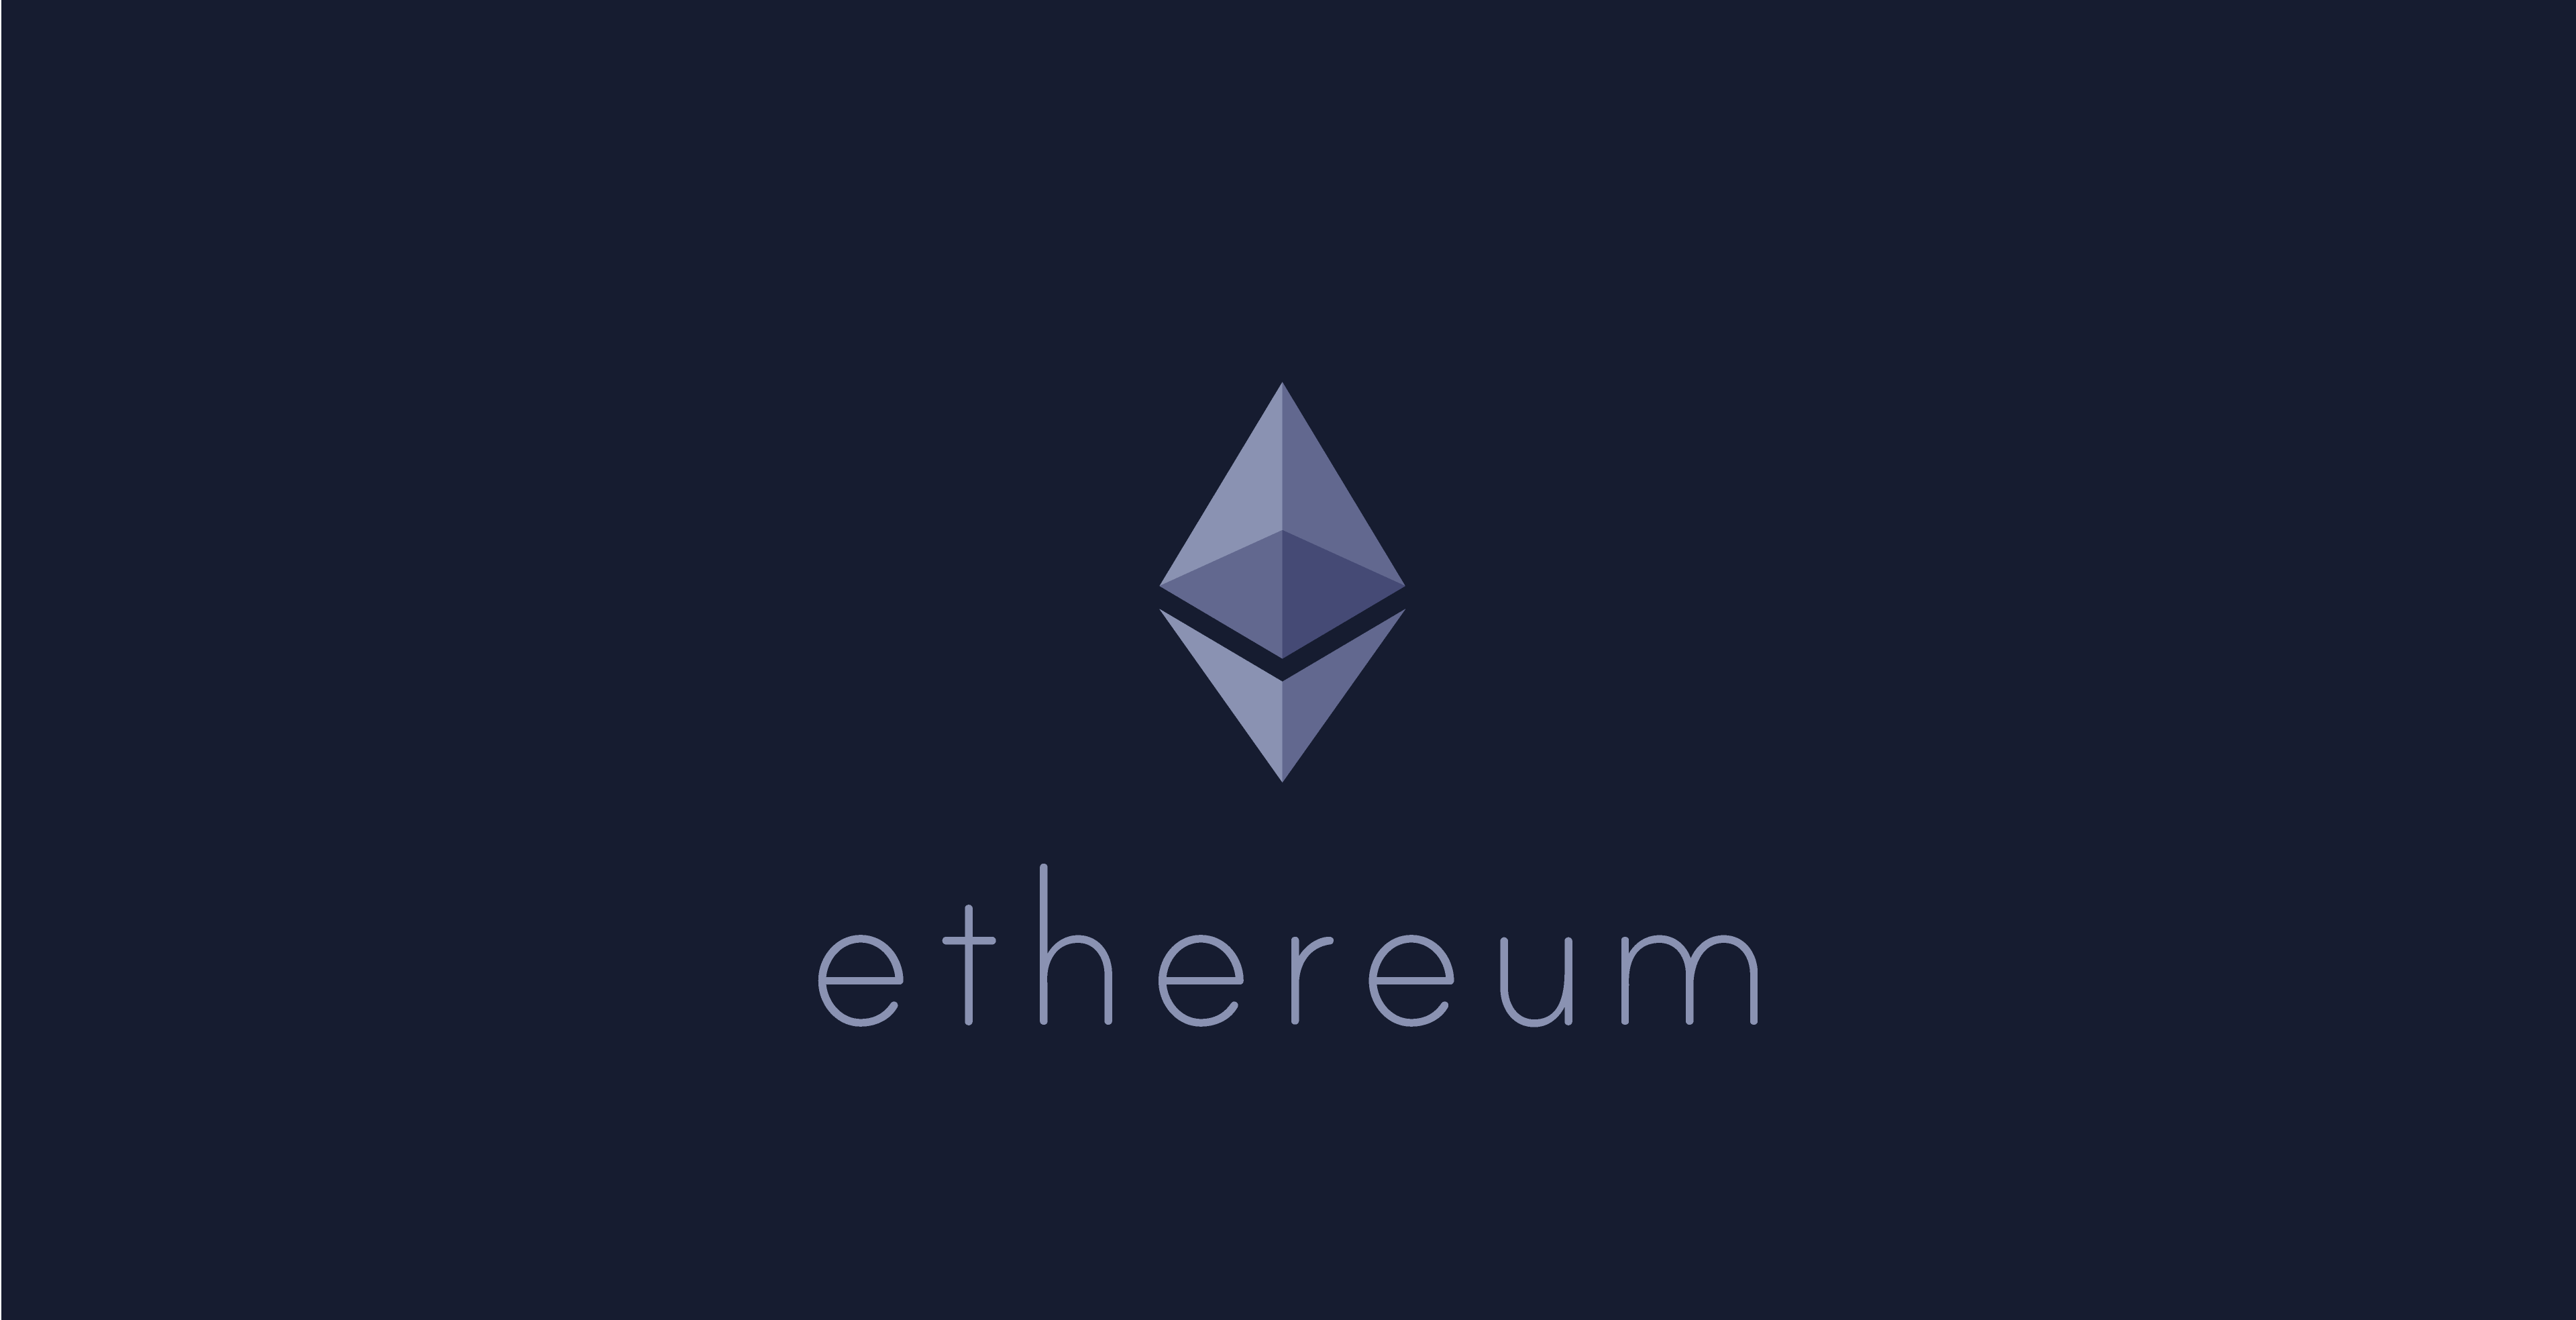 Ethereumpic1.png